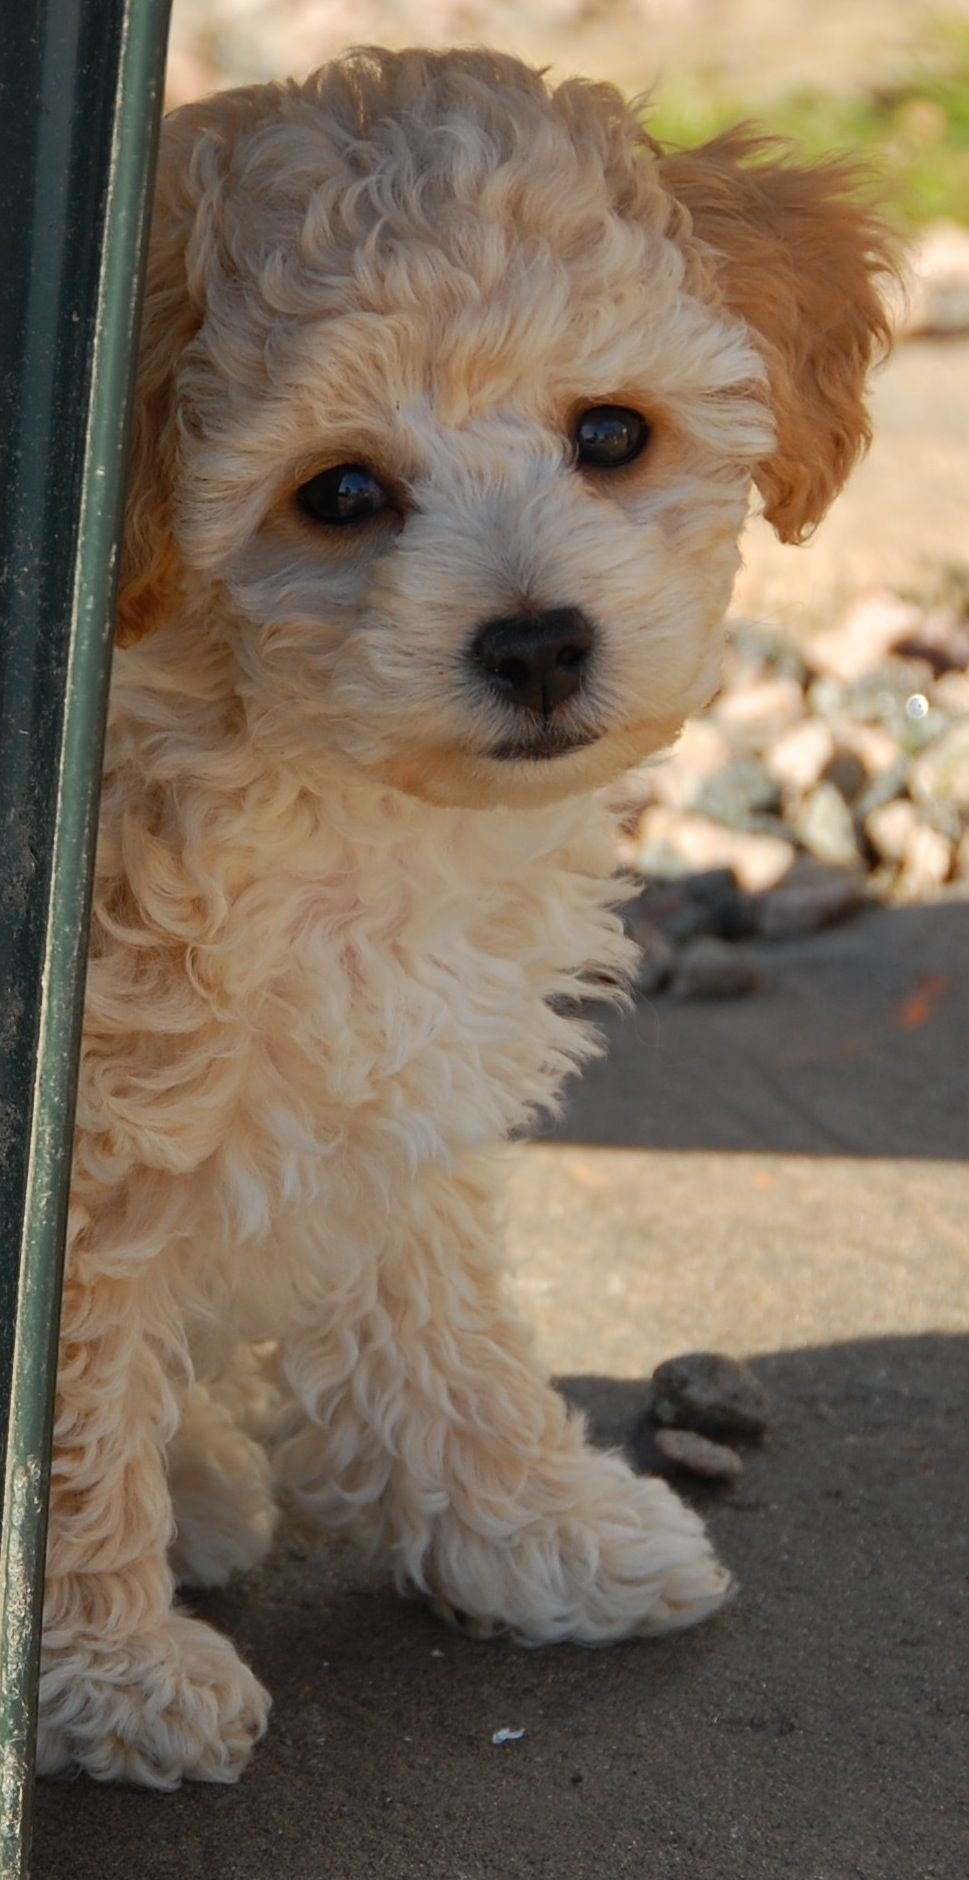 Poochon Mix Of Poodle And Bichon Frise Oh How I Miss My Little Annie Poochon Dog Cute Dogs Dog Love